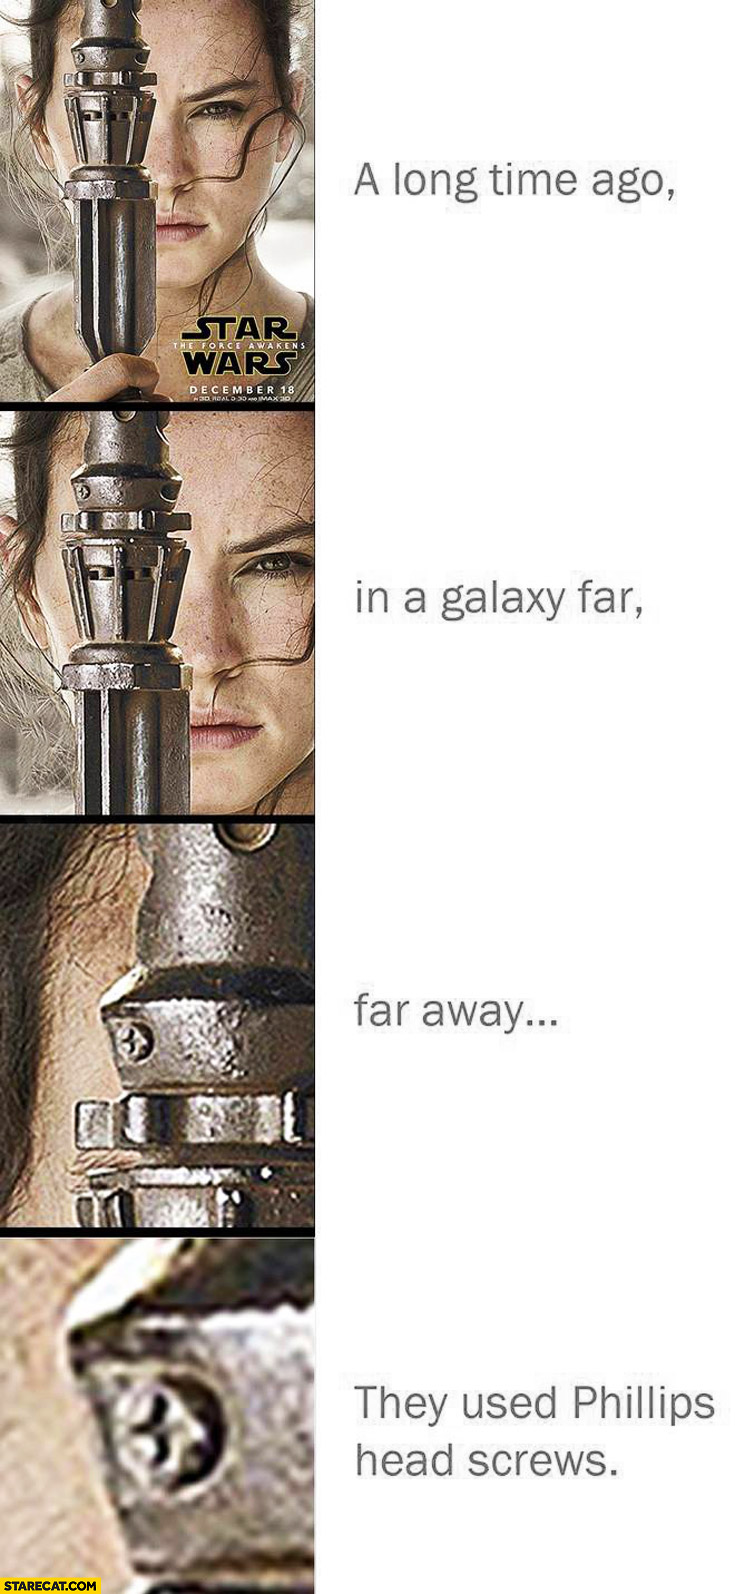 Lightsaber they used phillips head screws Star Wars poster fail